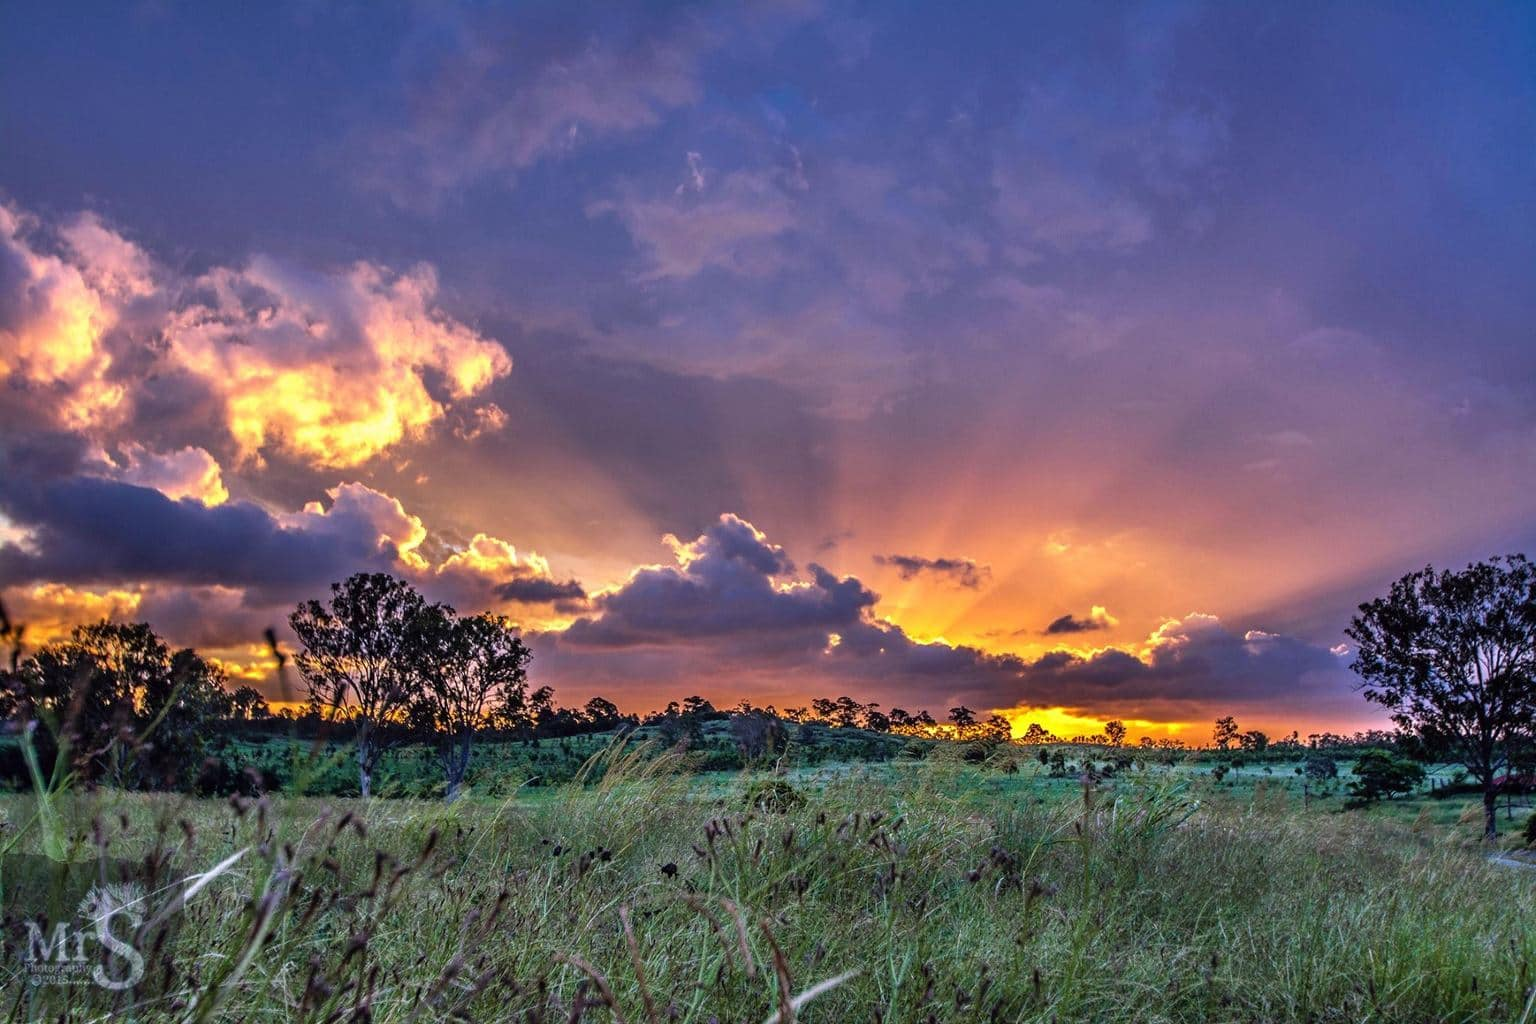 No Storms here as it's quickly approaching our winter. This shot was in January when a storm cell collapsed and I was left with the most amazing sunset instead. Queensland Australia Jan 19th 2015